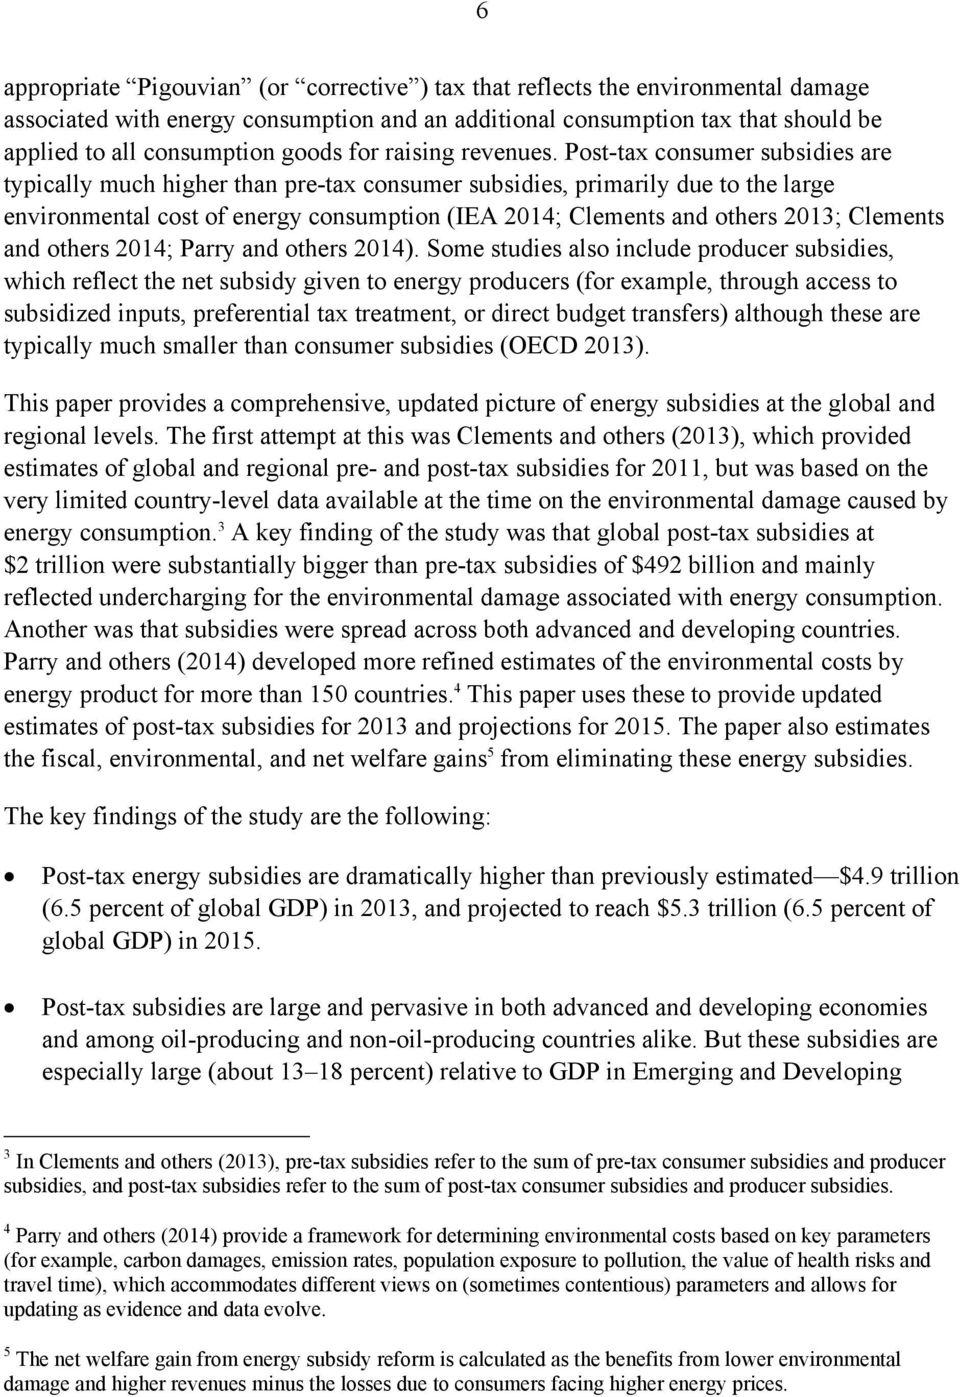 Post-tax consumer subsidies are typically much higher than pre-tax consumer subsidies, primarily due to the large environmental cost of energy consumption (IEA 2014; Clements and others 2013;